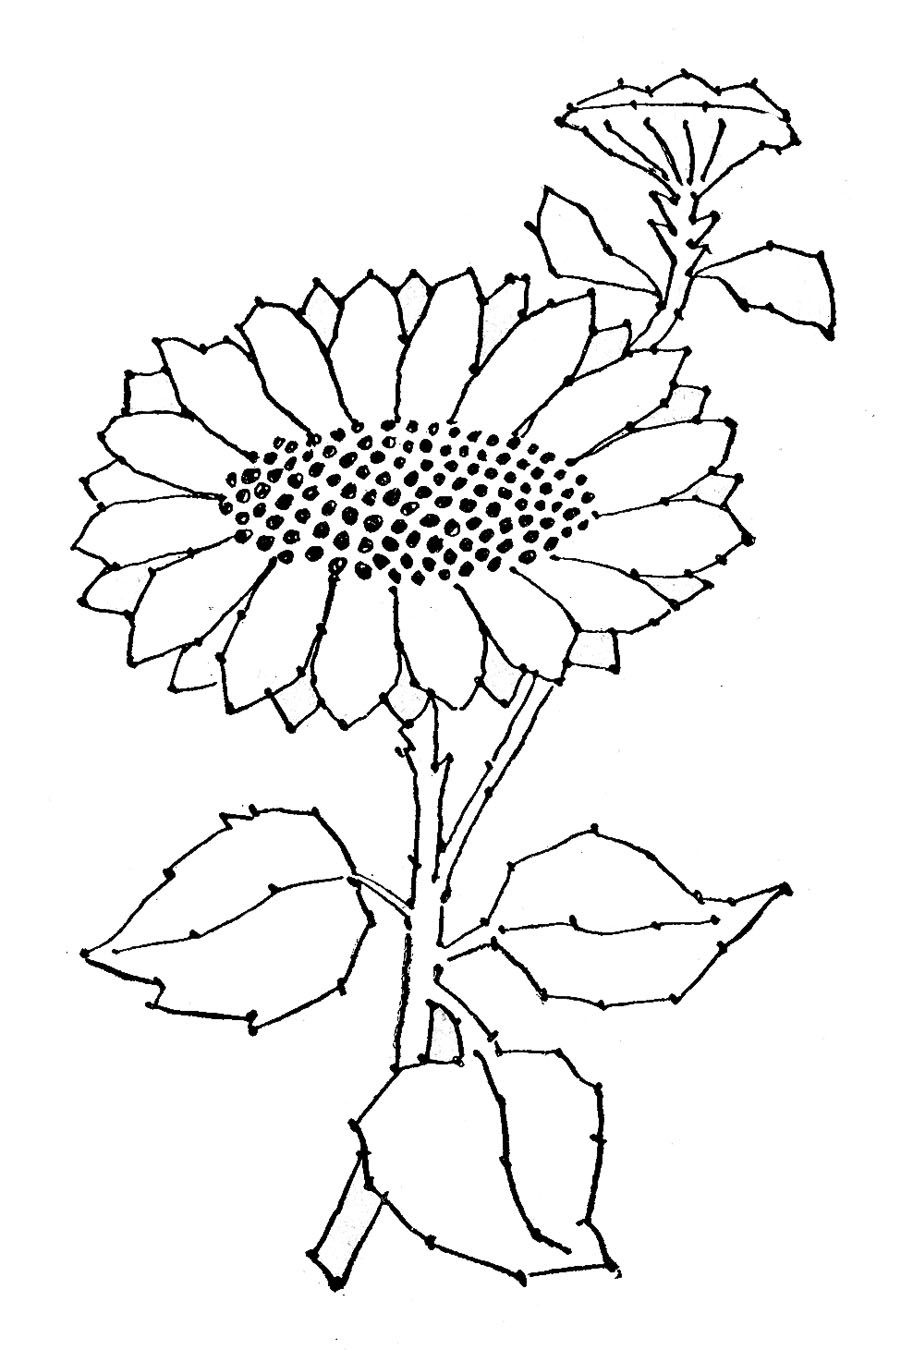 Embroidery Pattern - Sunflower Line Art | Graphics fairy, Sunflowers ...